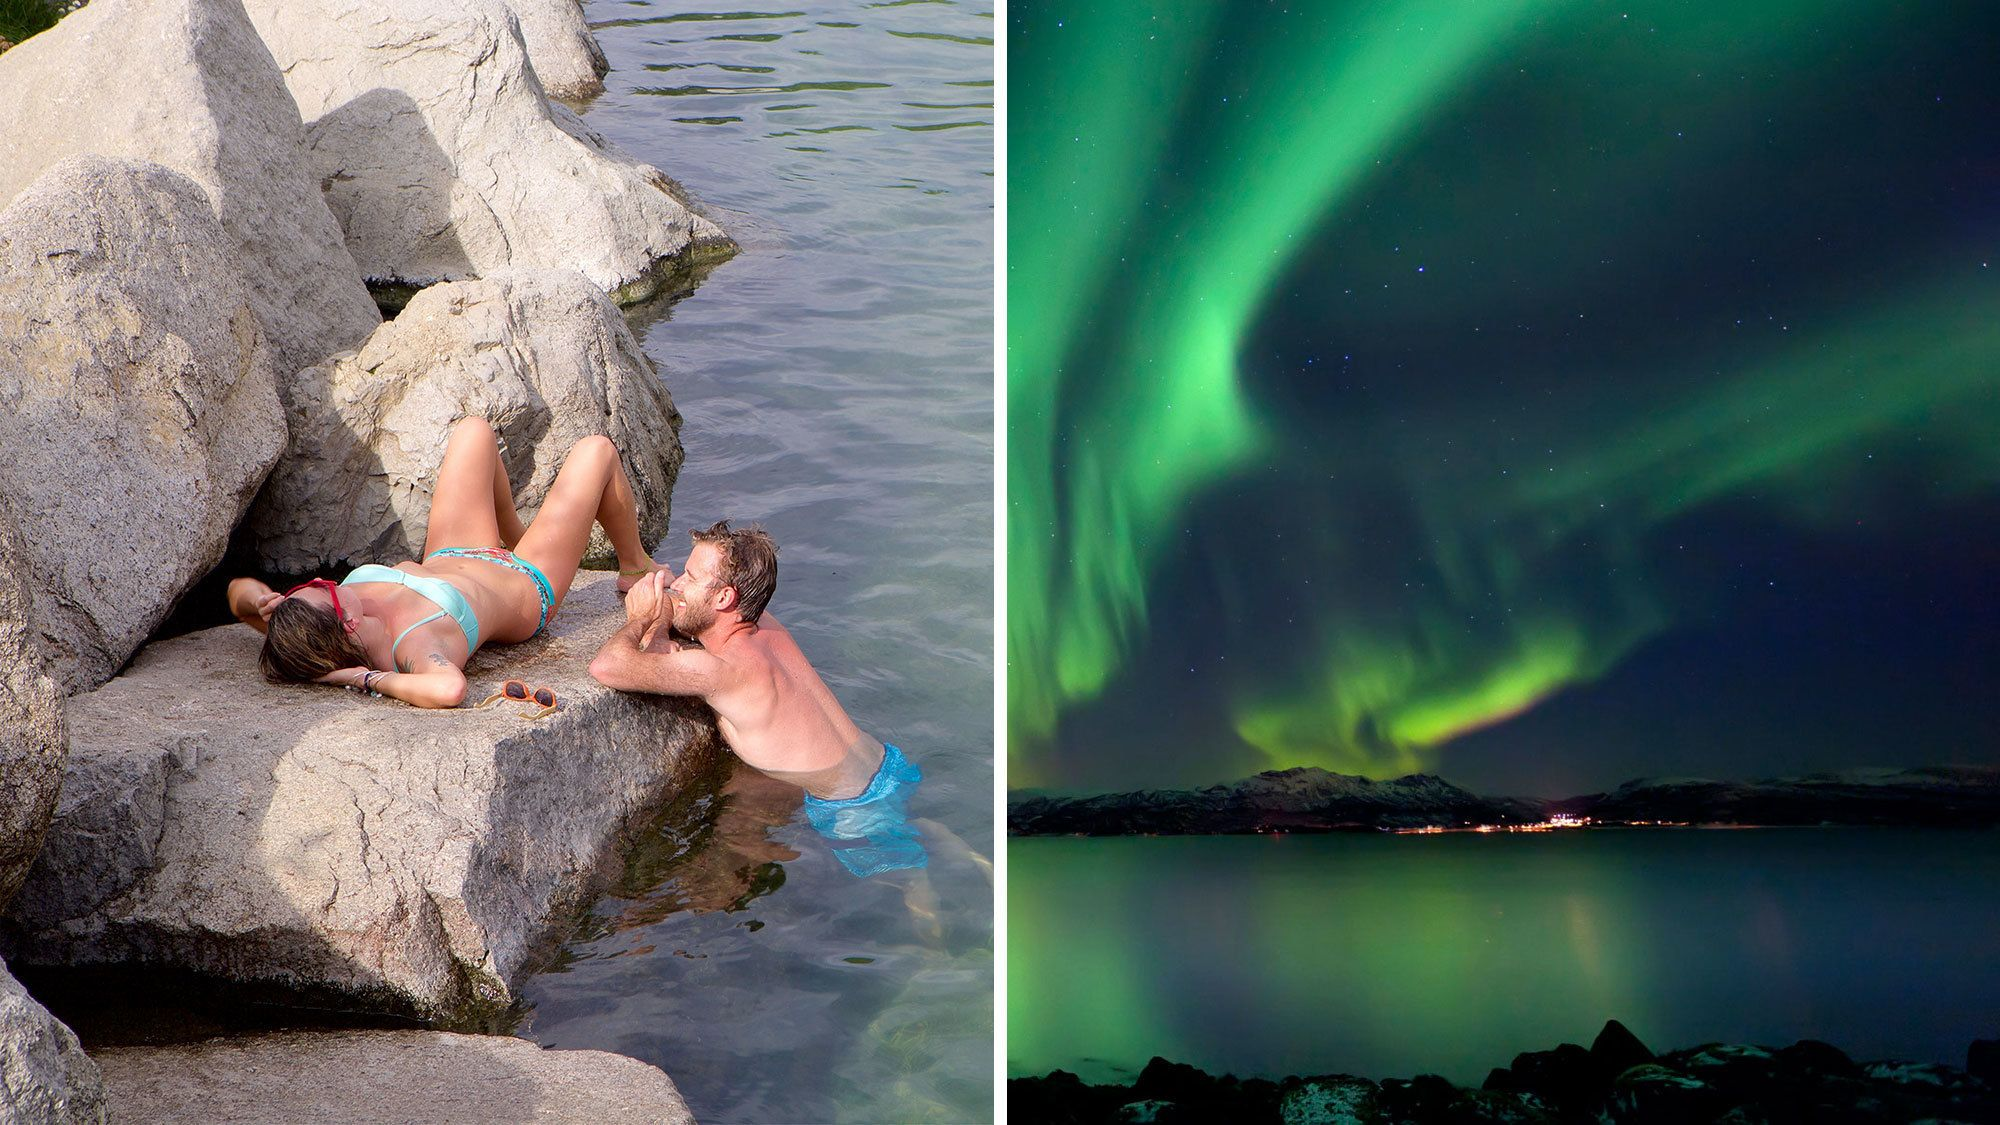 Split image of a couple in the Chena Hot Springs and the Northern Lights at night in Fairbanks